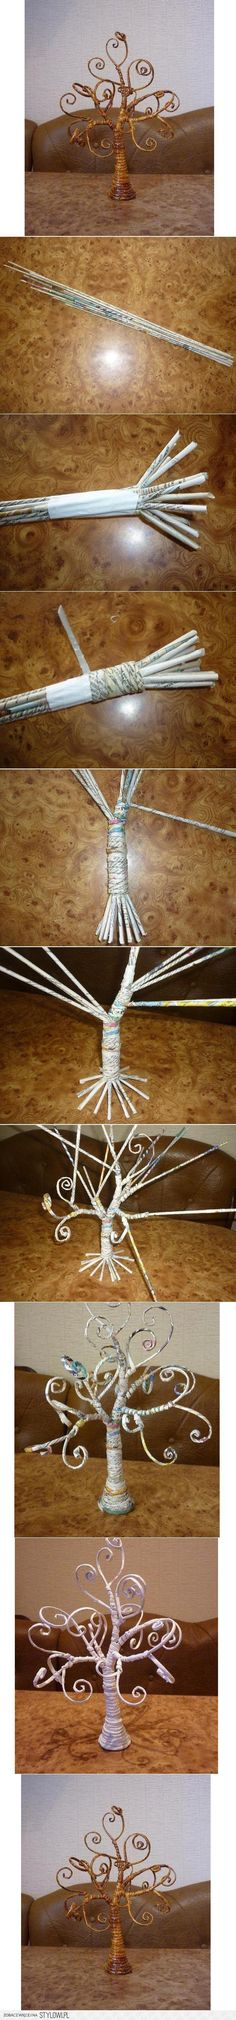 DIY Fabulous Newspaper Tree DIY Projects | UsefulDIY.co… na Stylowi.pl